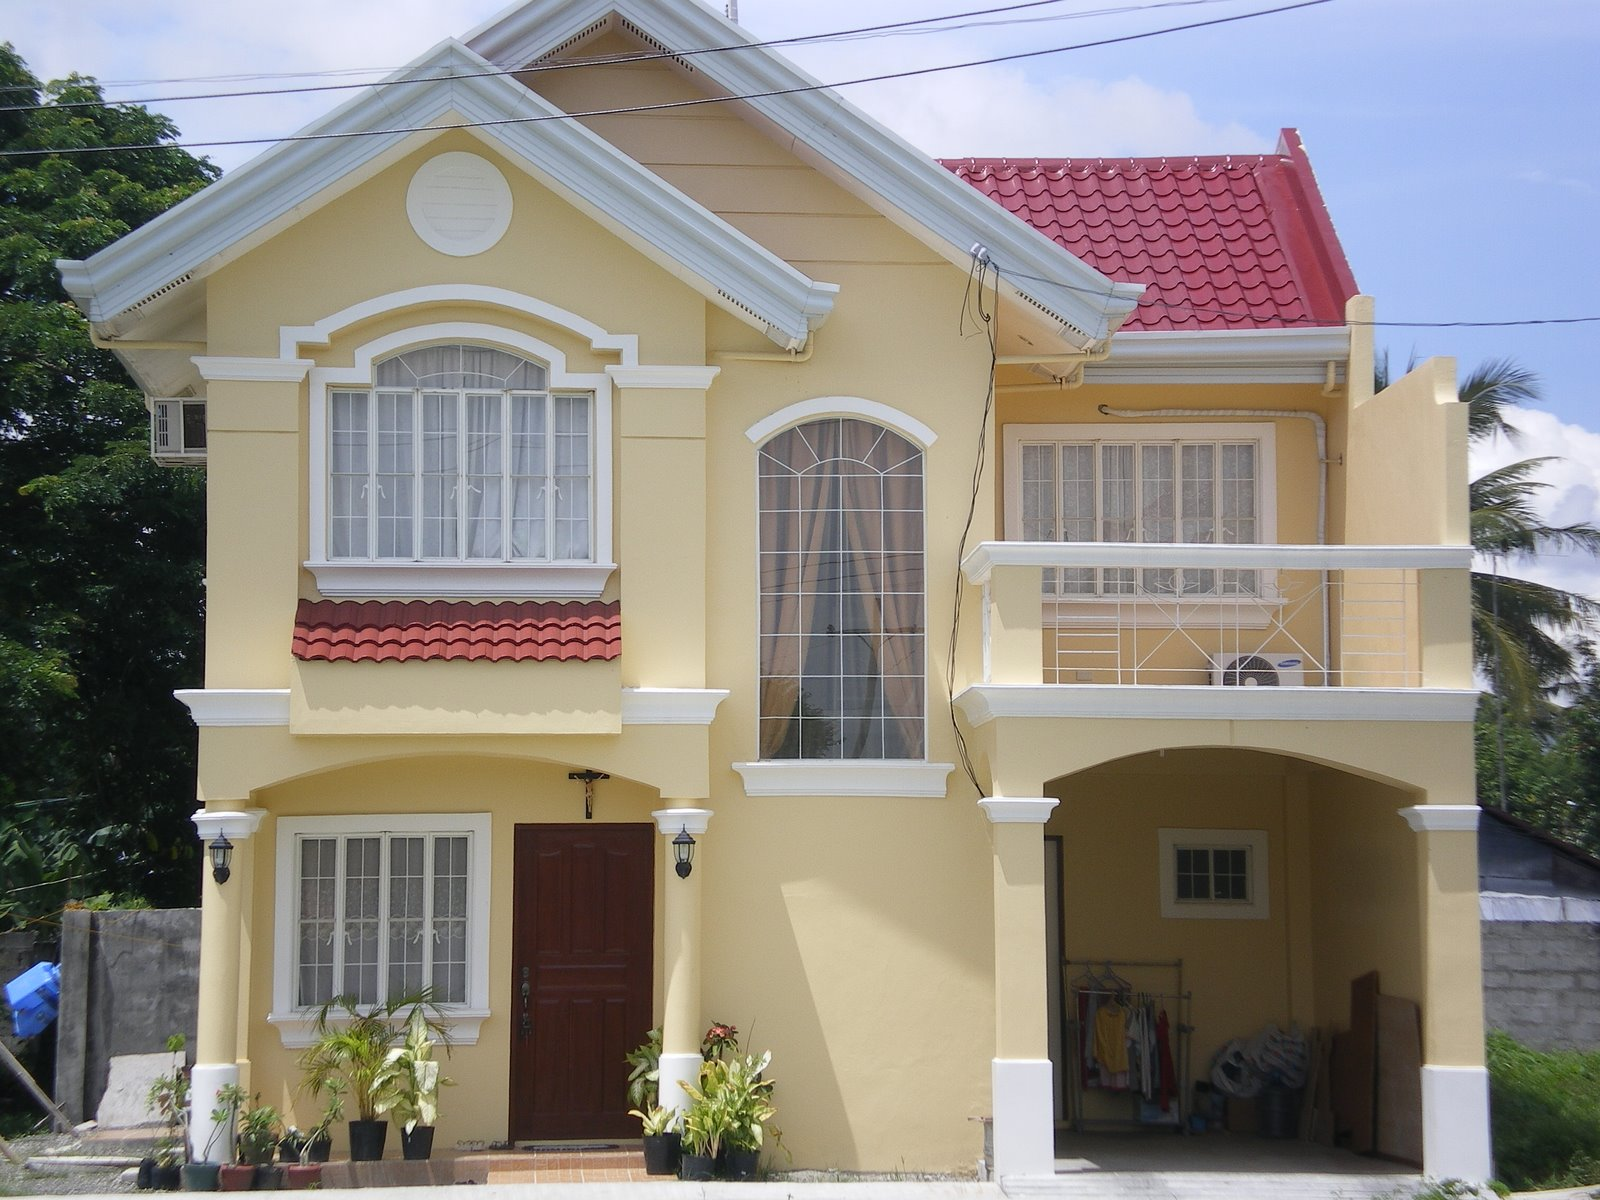 centennial villas iloilo by eon realty and development corp in